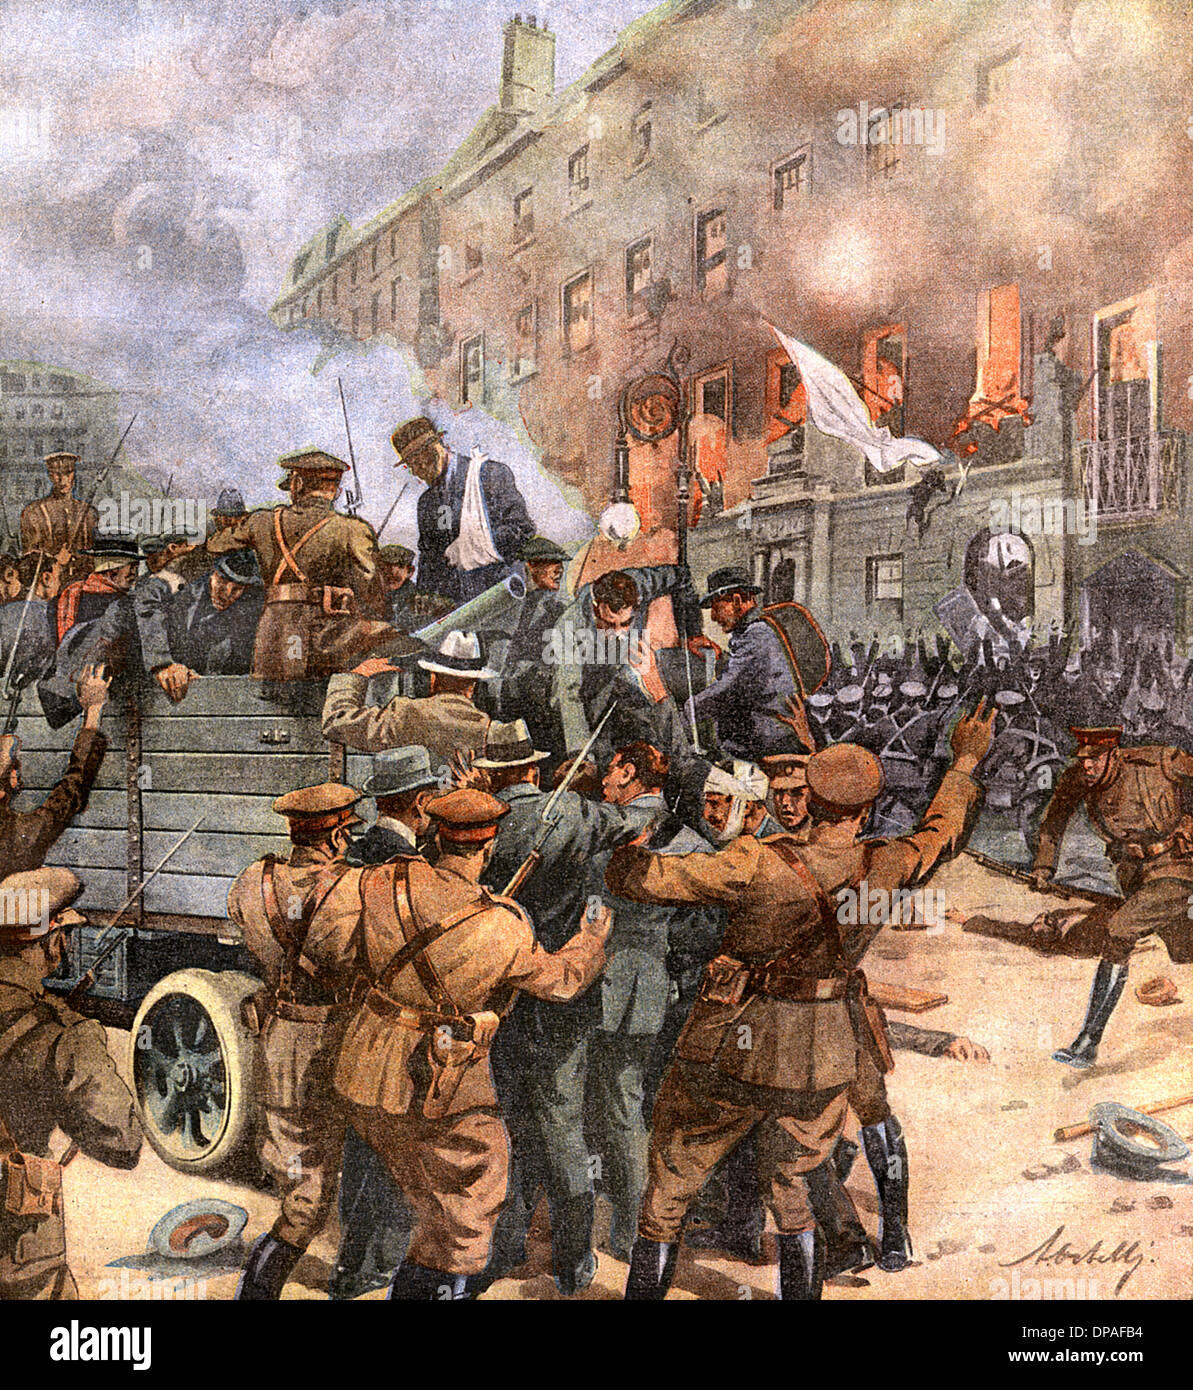 CIVIL WAR DUBLIN 1922 - Stock Image